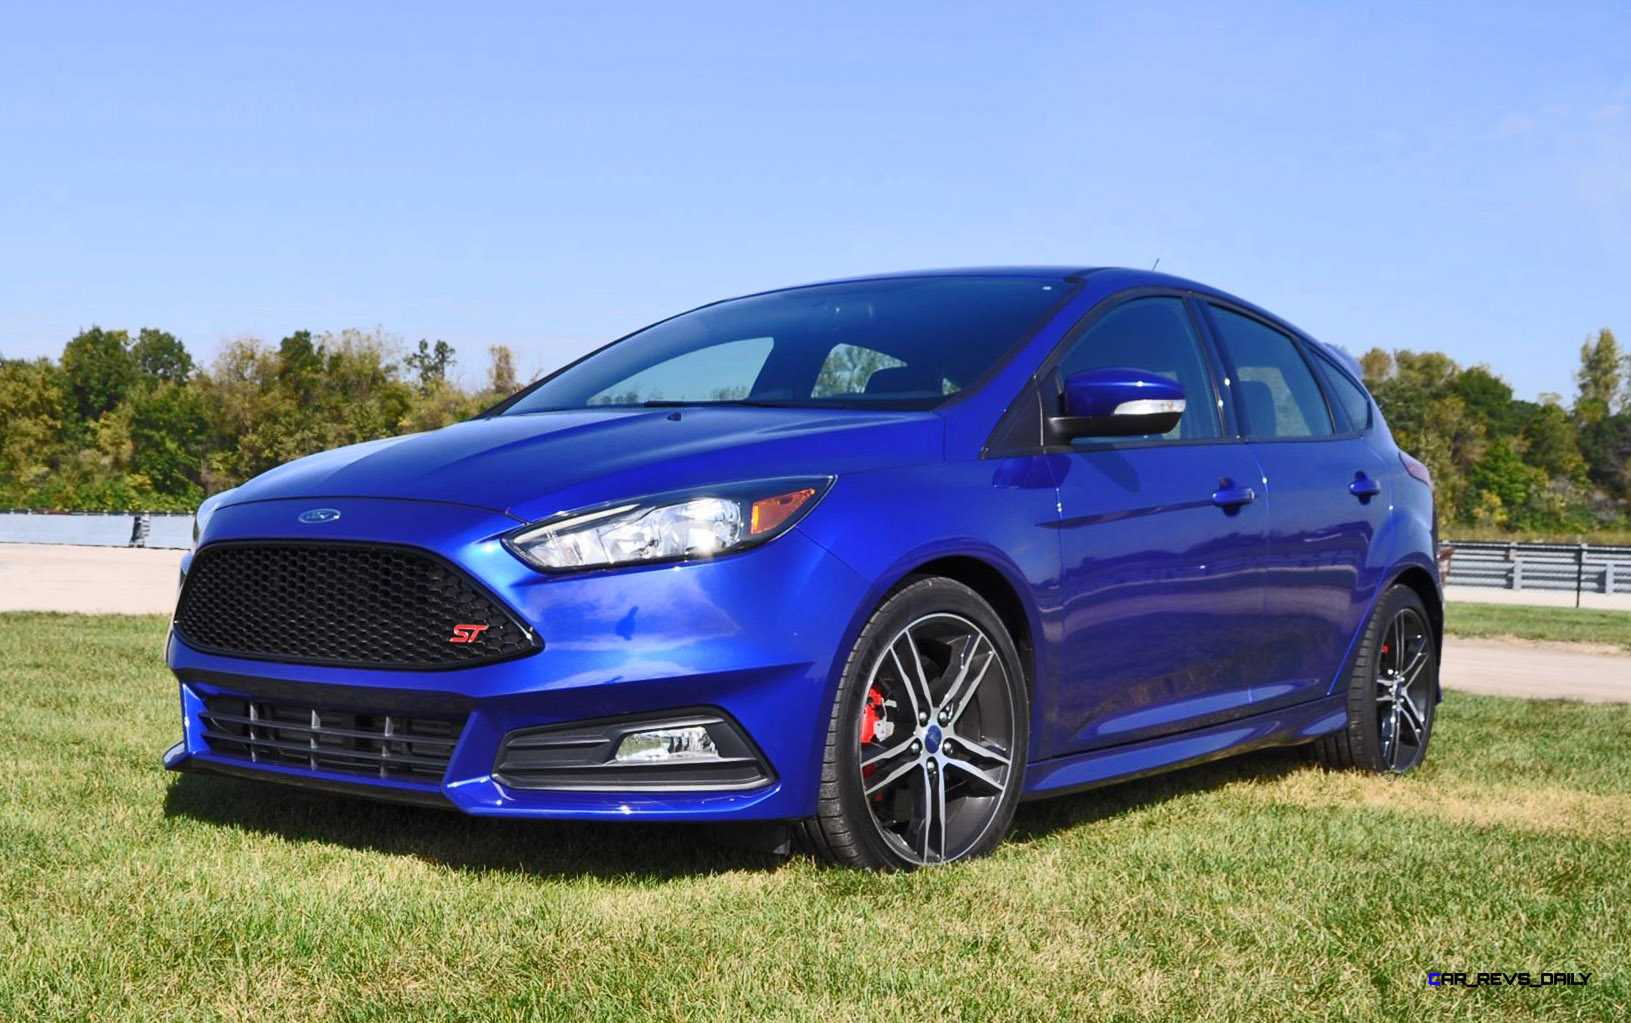 2016 ford focus st kona blue st1 flyaround in 120 pics hd video car revs. Black Bedroom Furniture Sets. Home Design Ideas